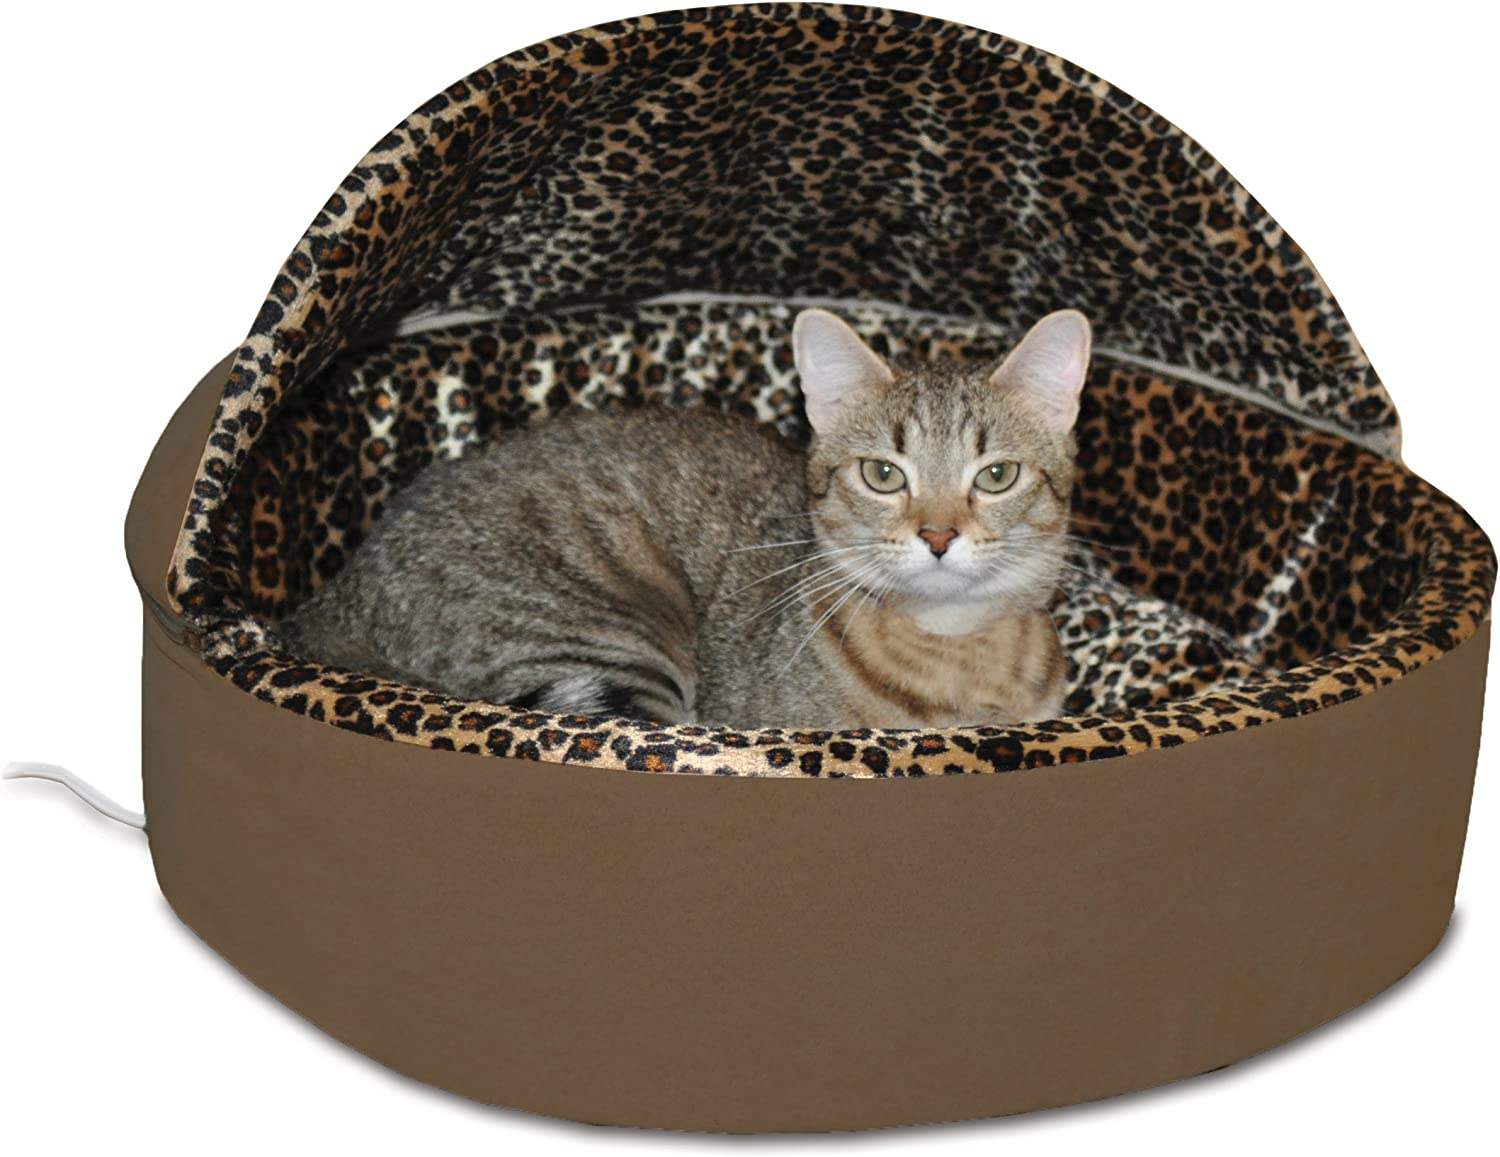 K&H Manufacturing ThermoKitty Deluxe Hooded Cat Bed, Small 16Inch, 4Watts, Mocha Leopard